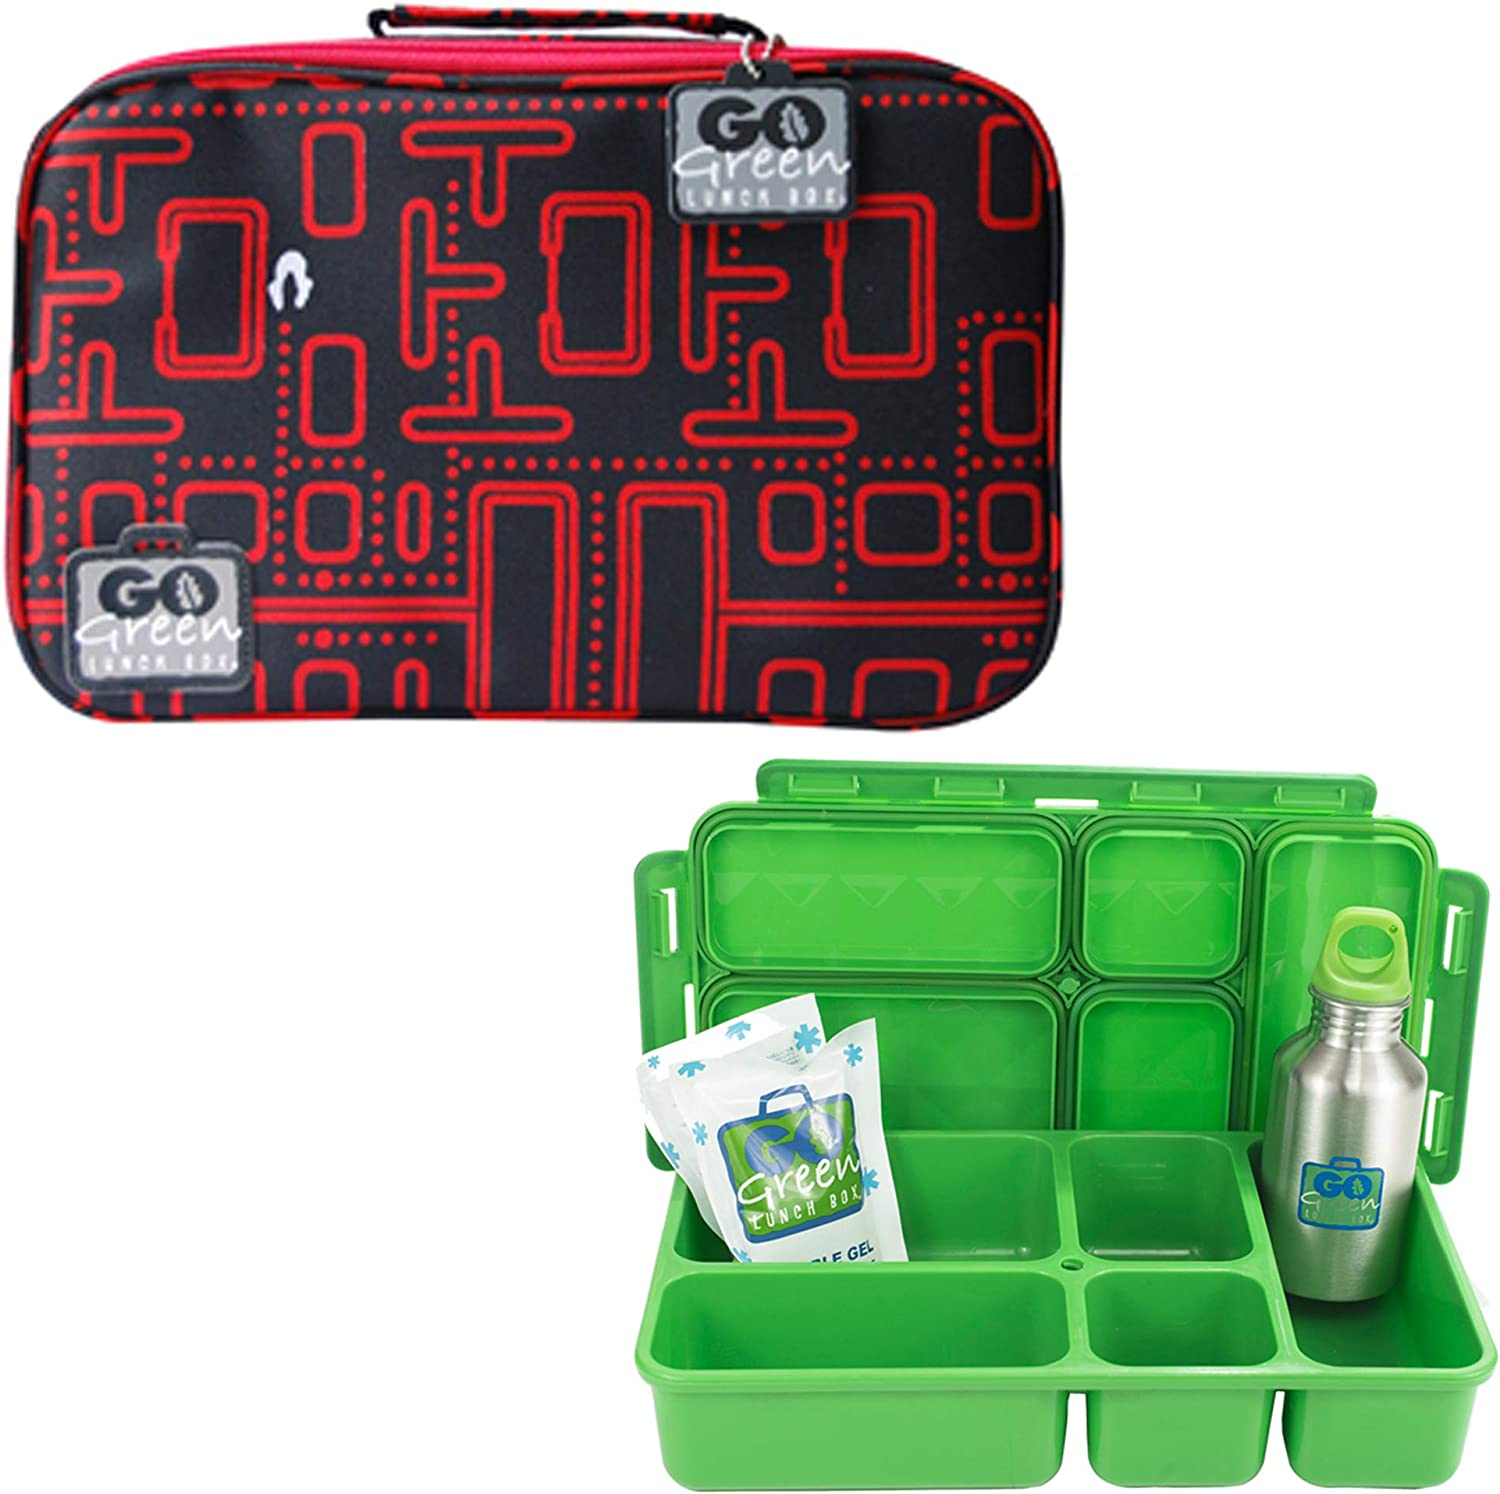 Go Green Lunch Box Set • 5 Compartment Leak-Proof Lunch Box • Insulated Carrying Bag • Beverage Bottle • Gel Freezer Pack | Adults and Kids (Packman)